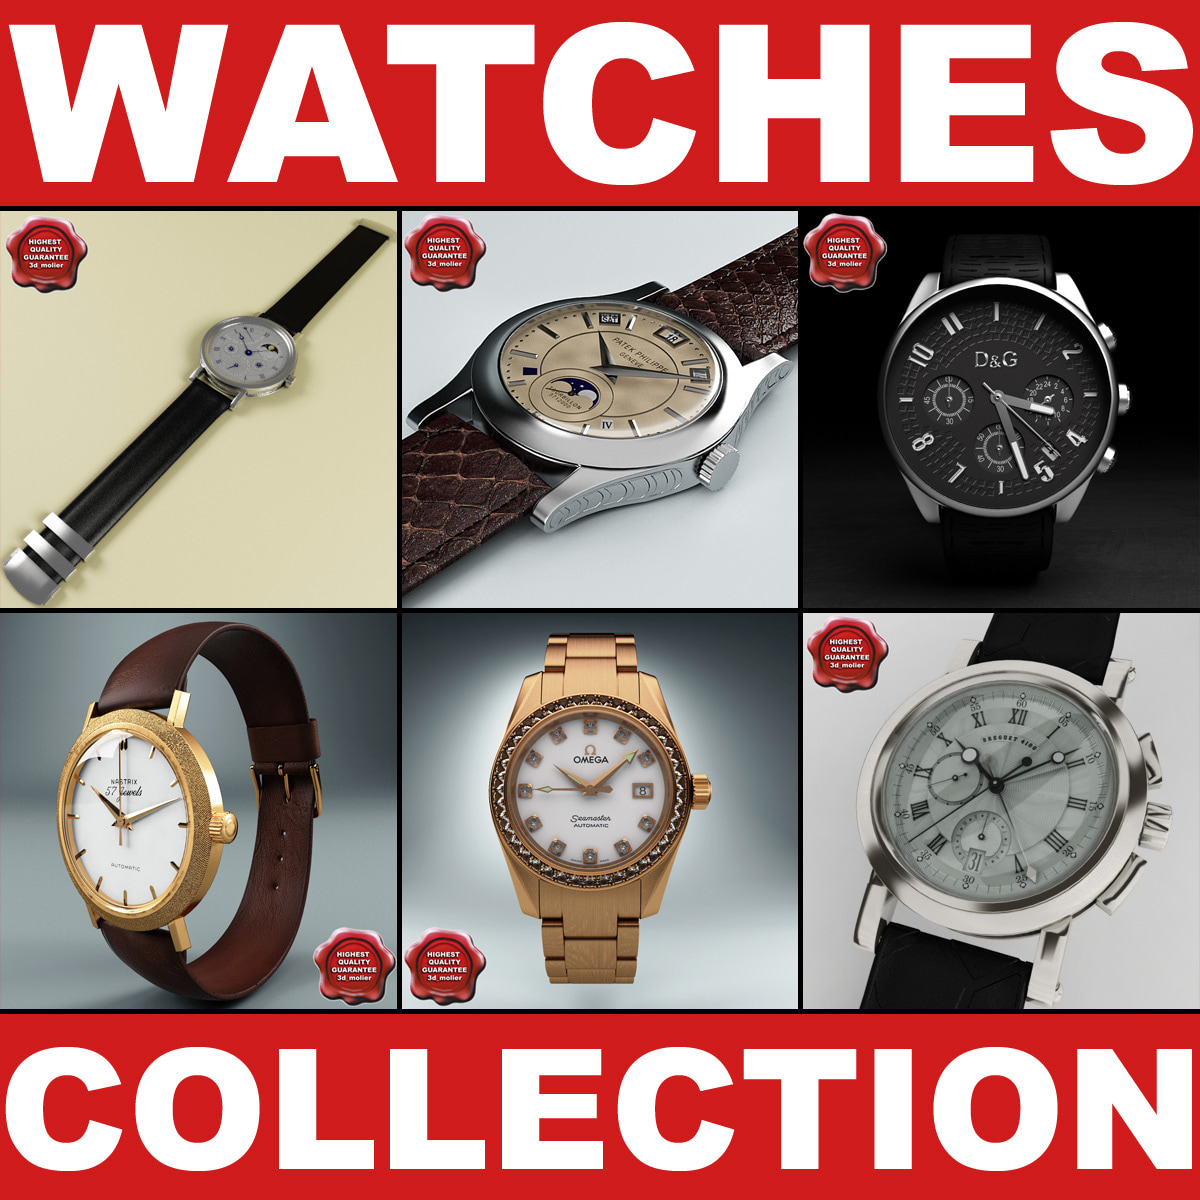 Watches_Collection_V2_000.jpg